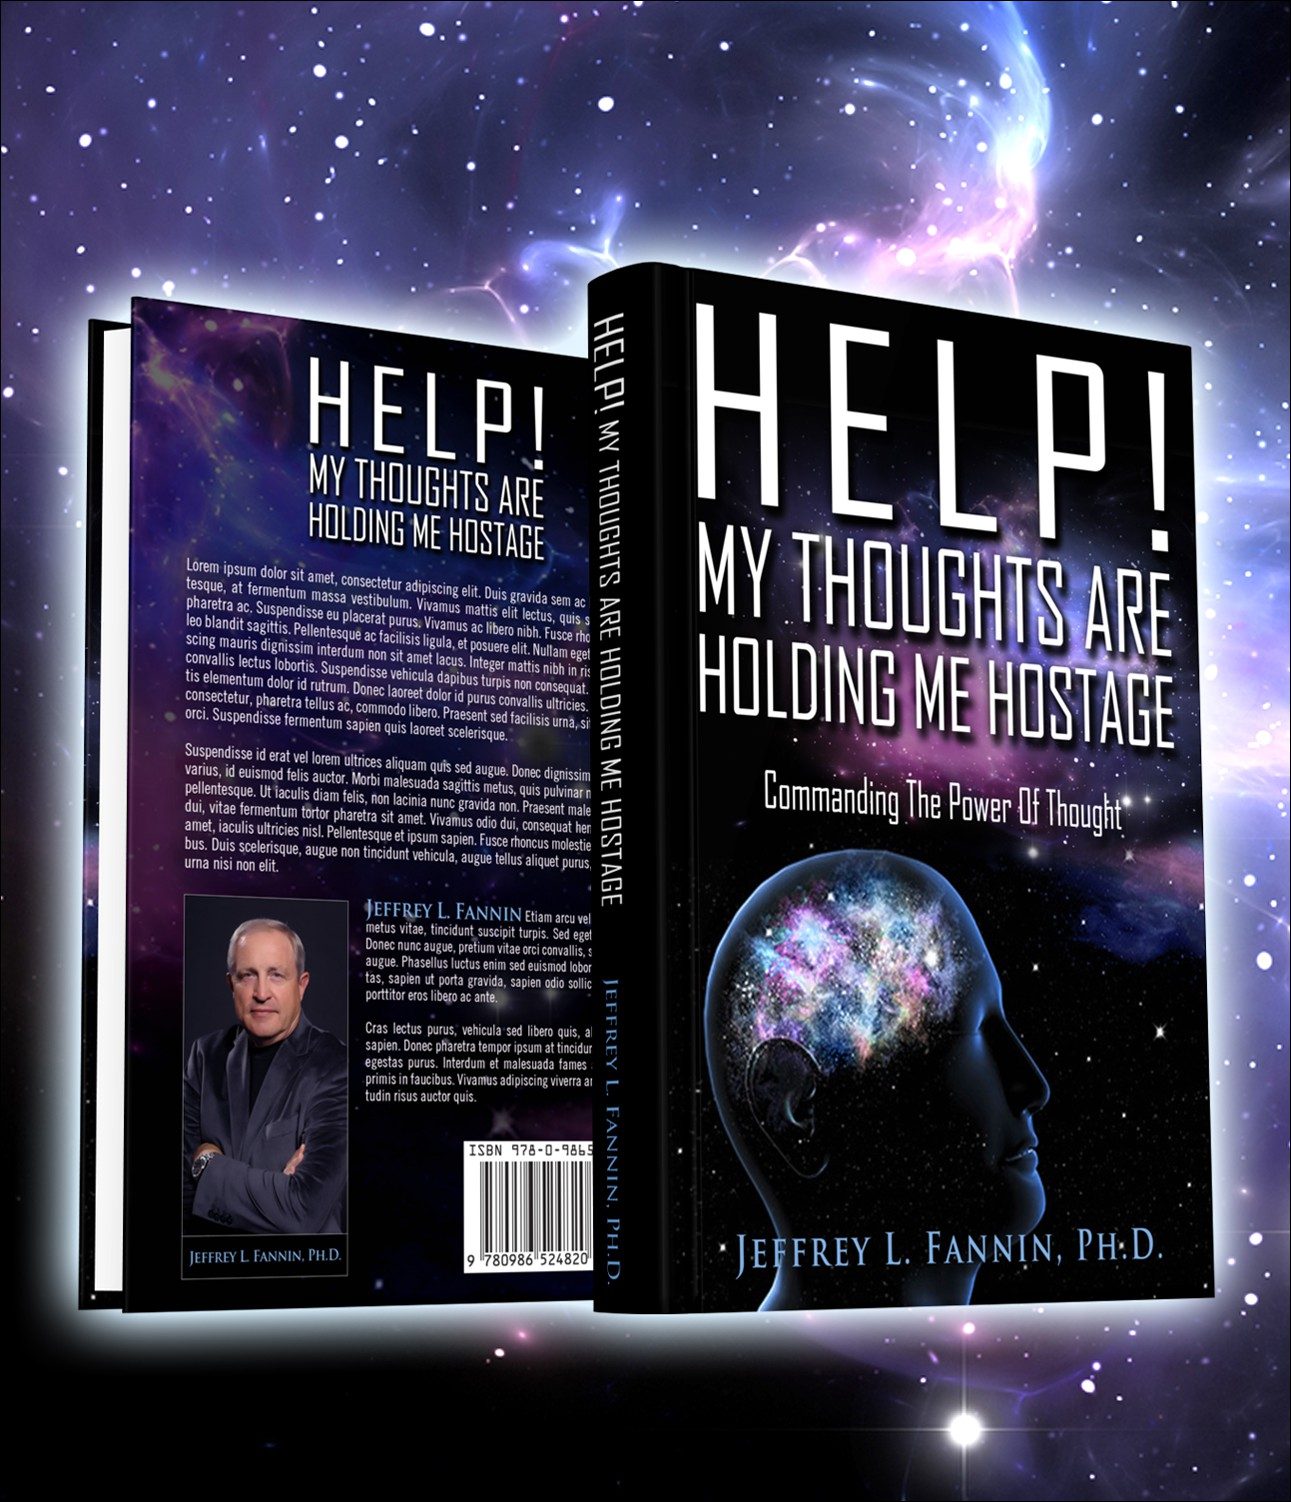 Help! My Thoughts Are Holding Me Hostage